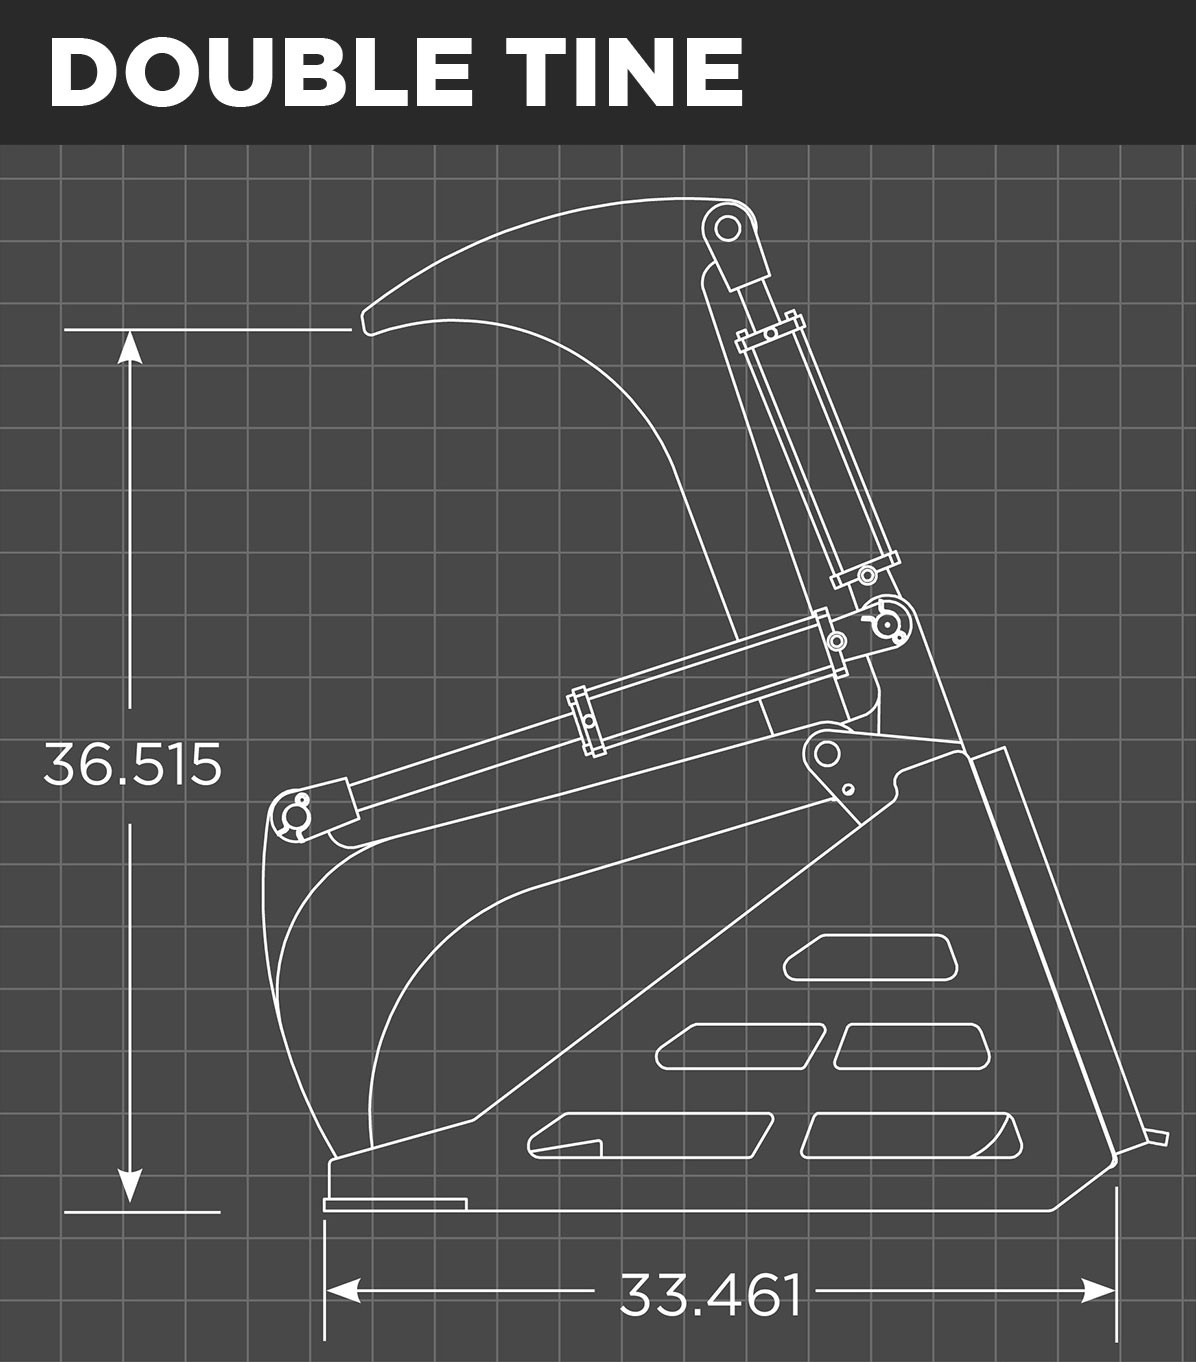 Rock Bucket Double Tine Schematic